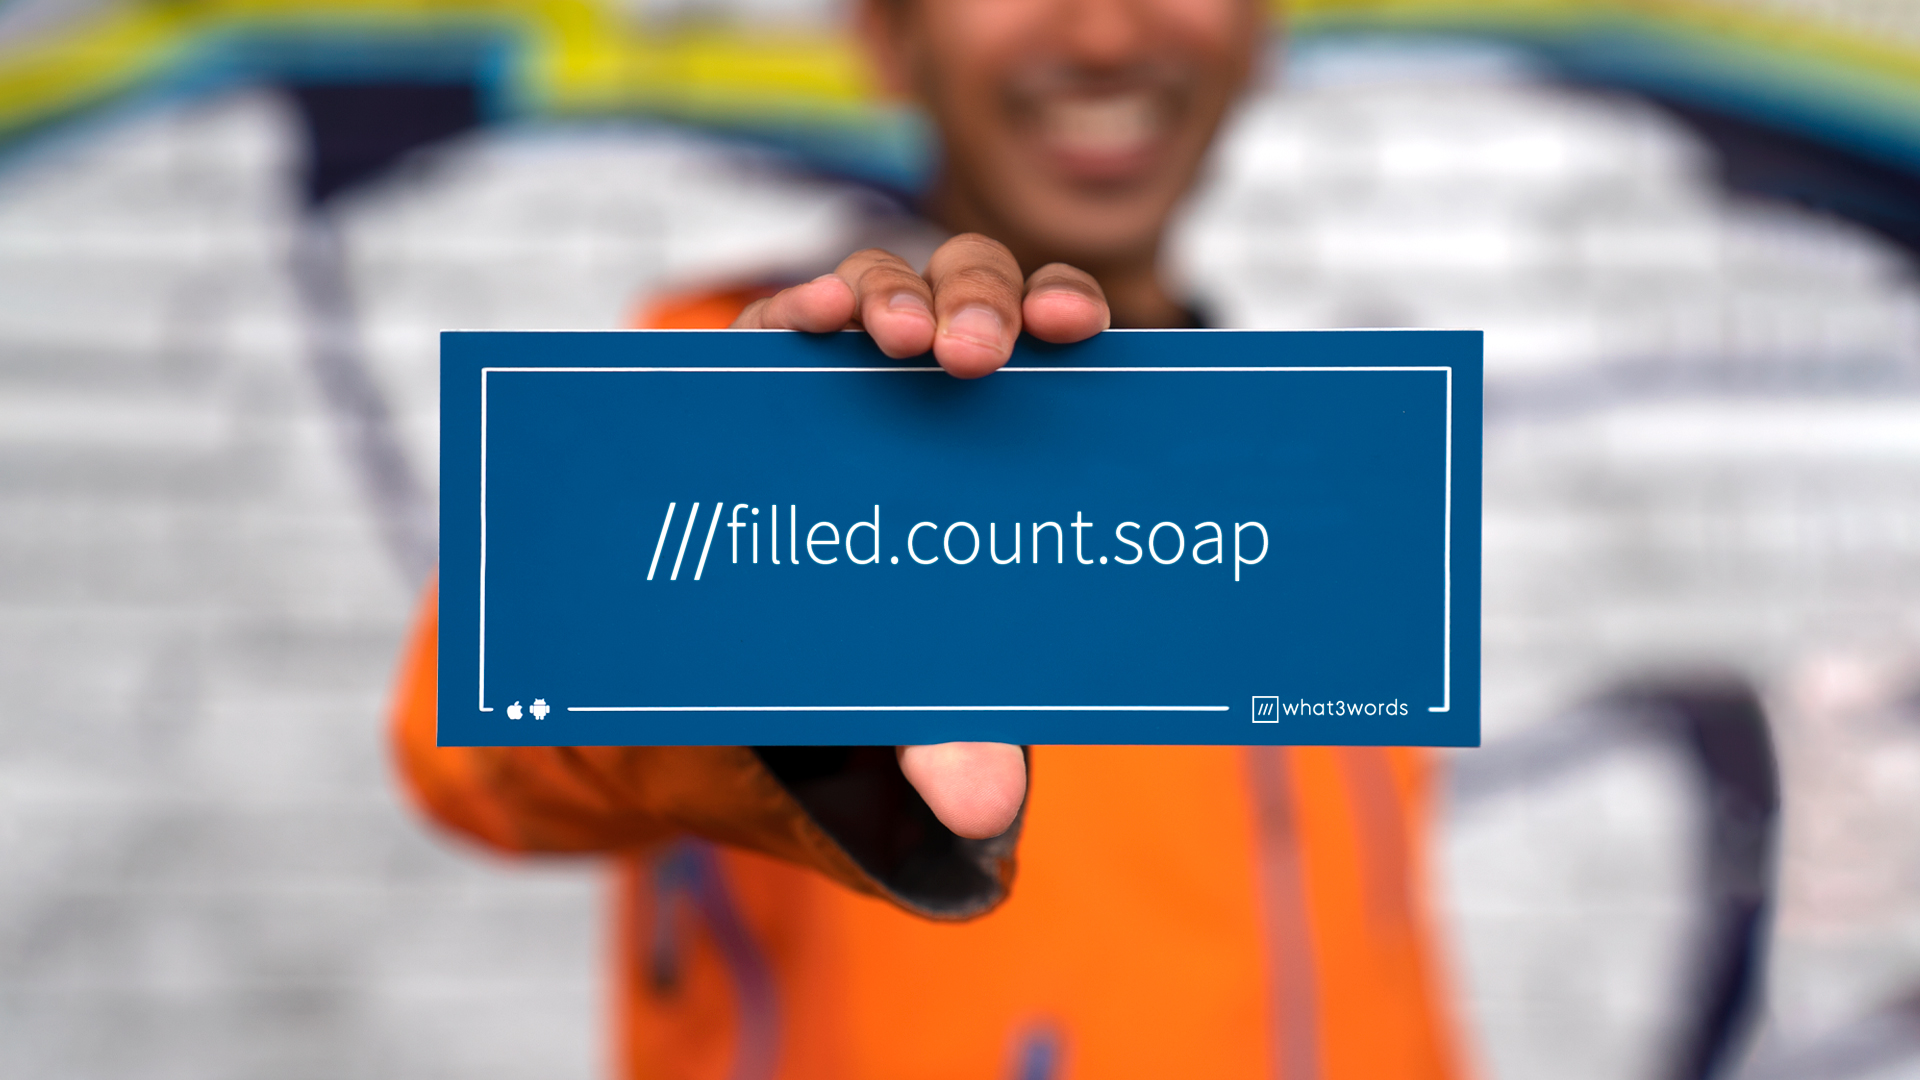 Personalised sign 'filled.count.soap'